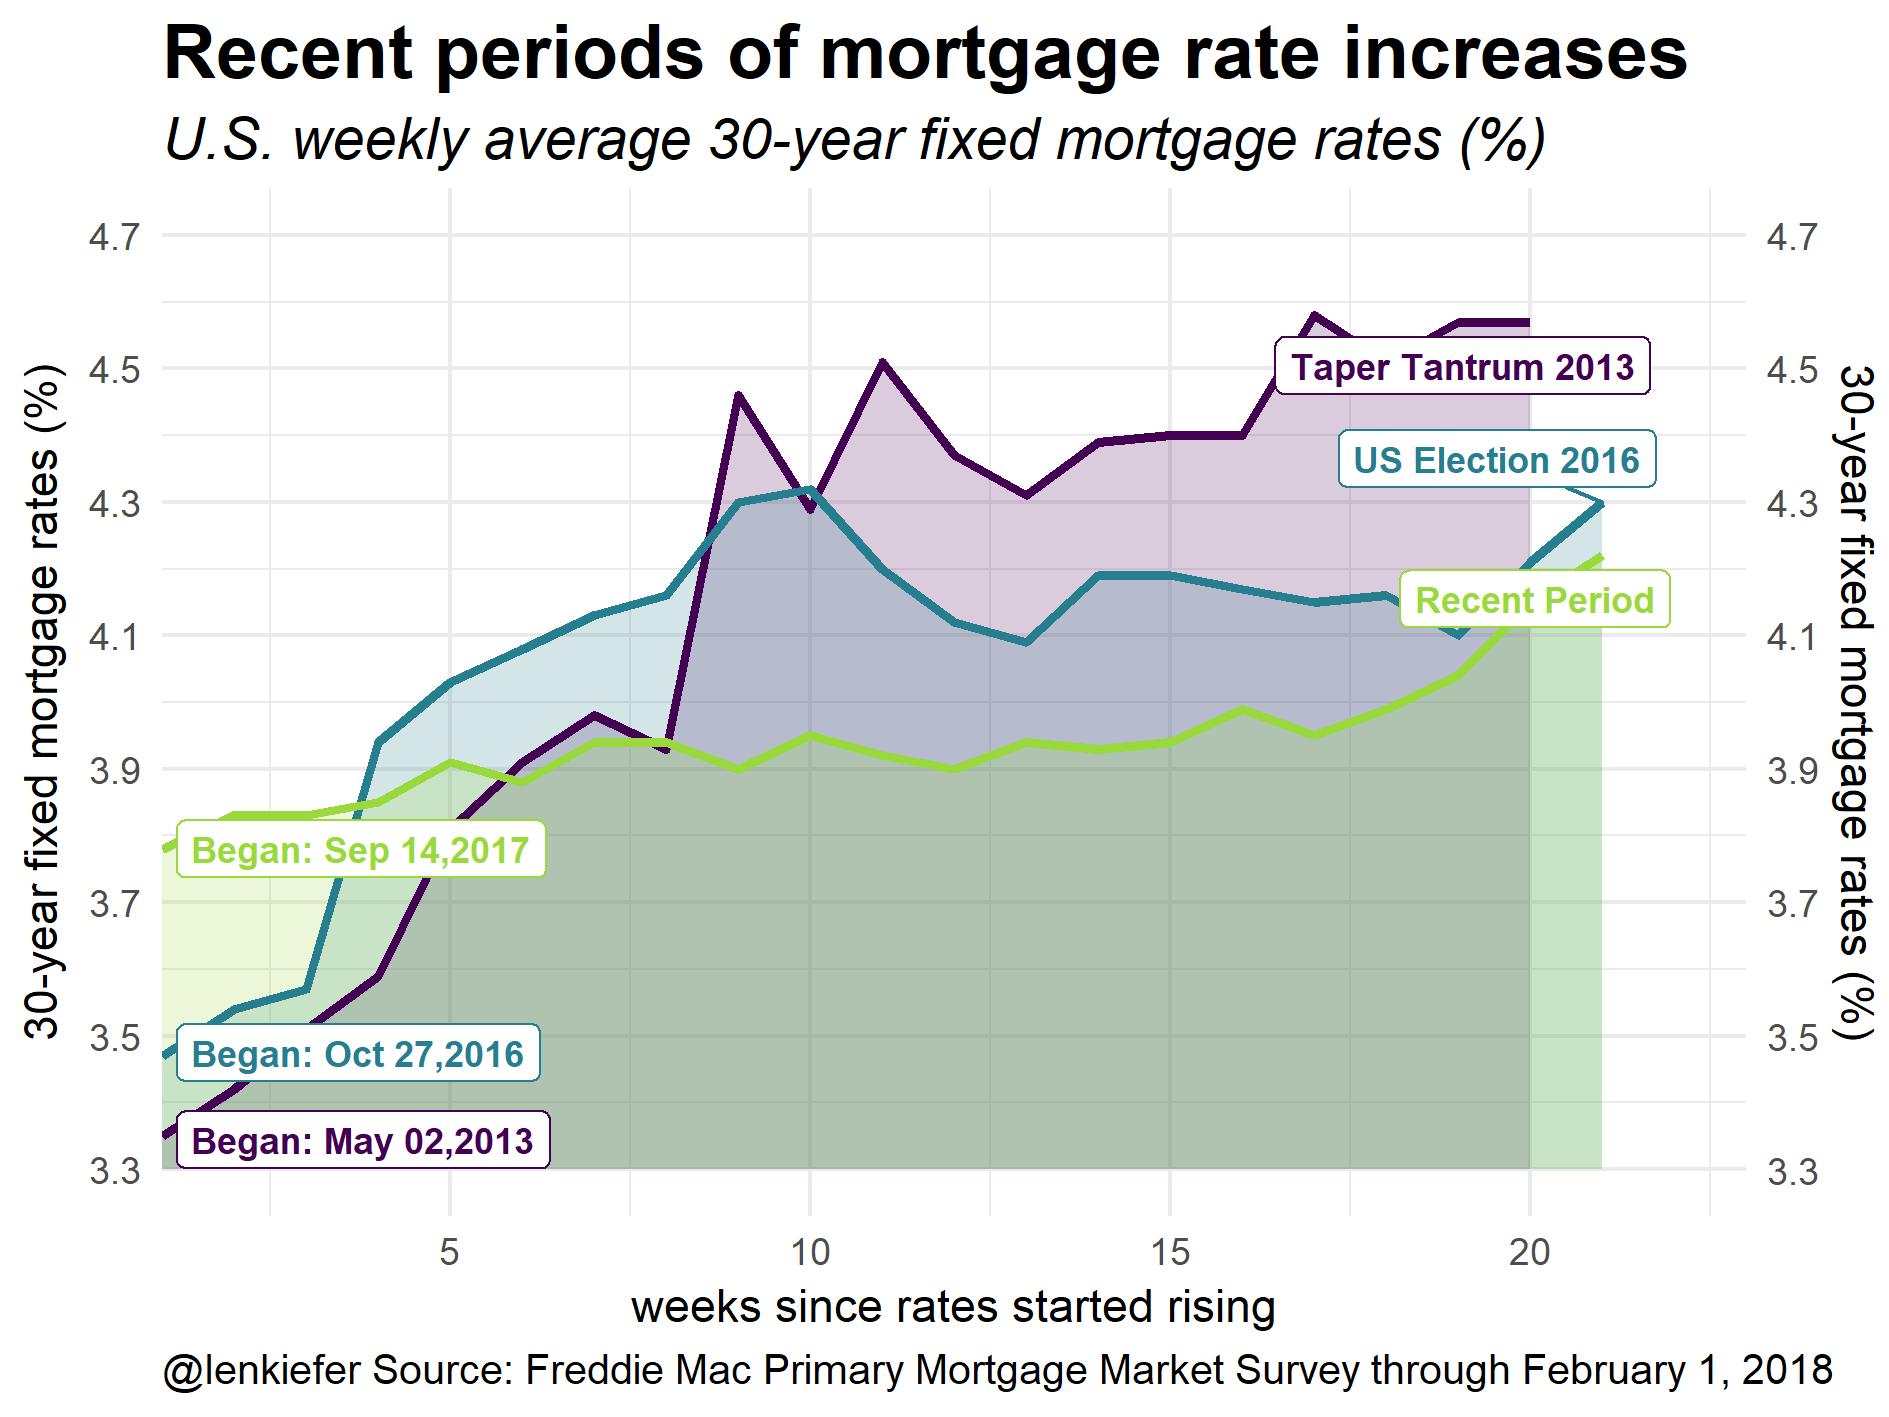 Comparing recent periods of mortgage rate increases · Len Kiefer